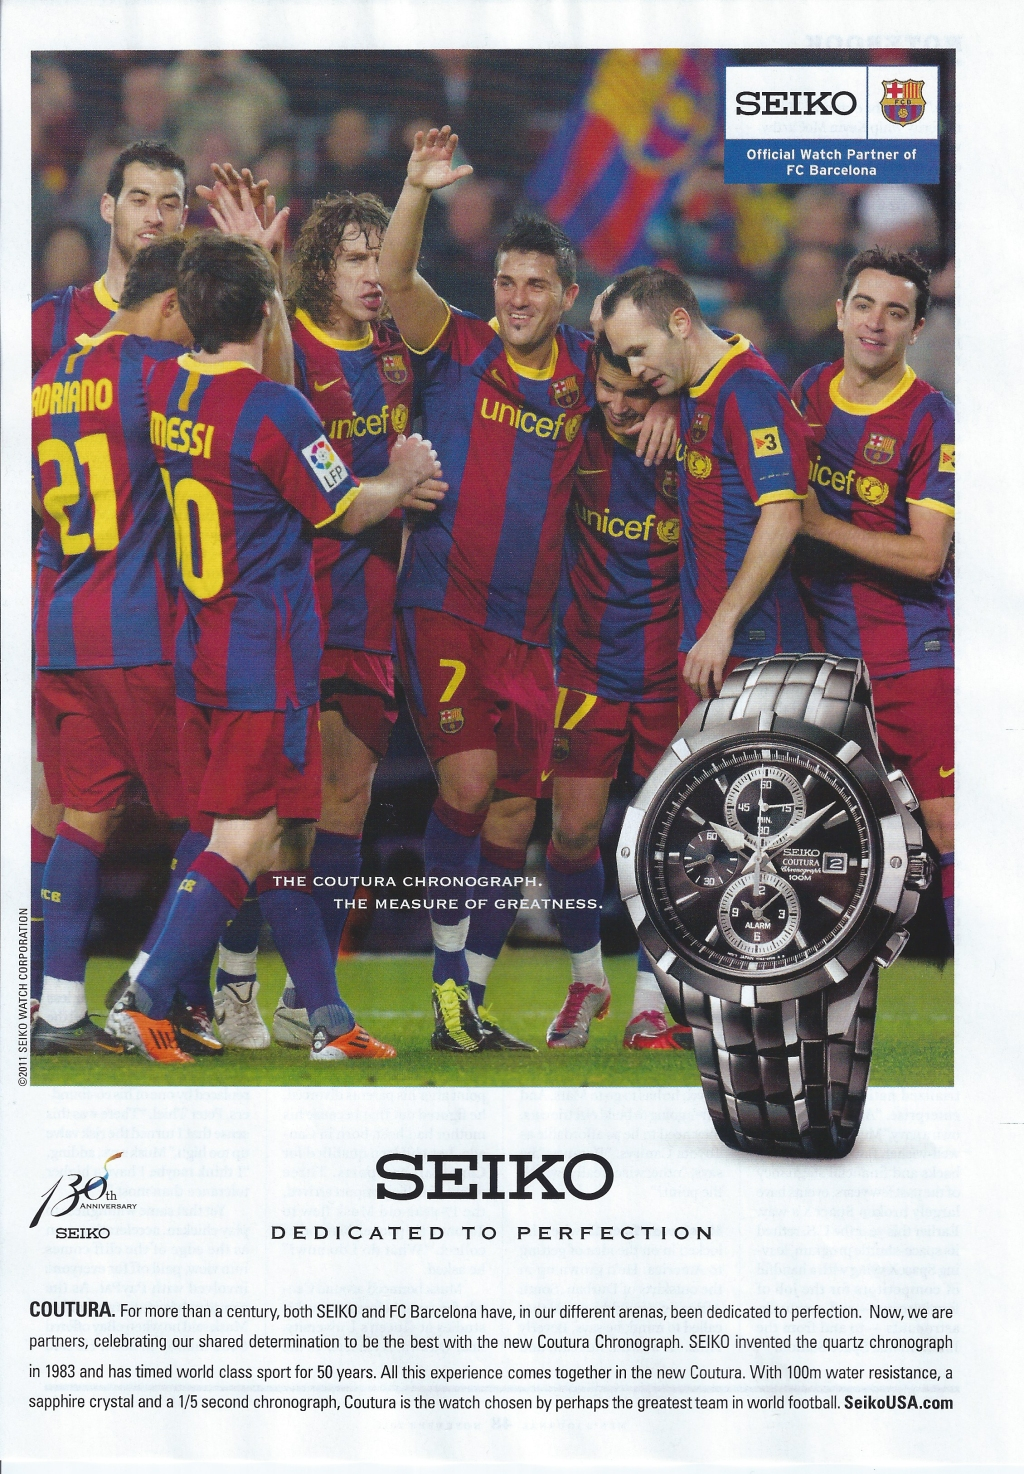 Watch Ad. The Coutura Chronograph. The Measure of Greatness  FC Barcelona for Seiko